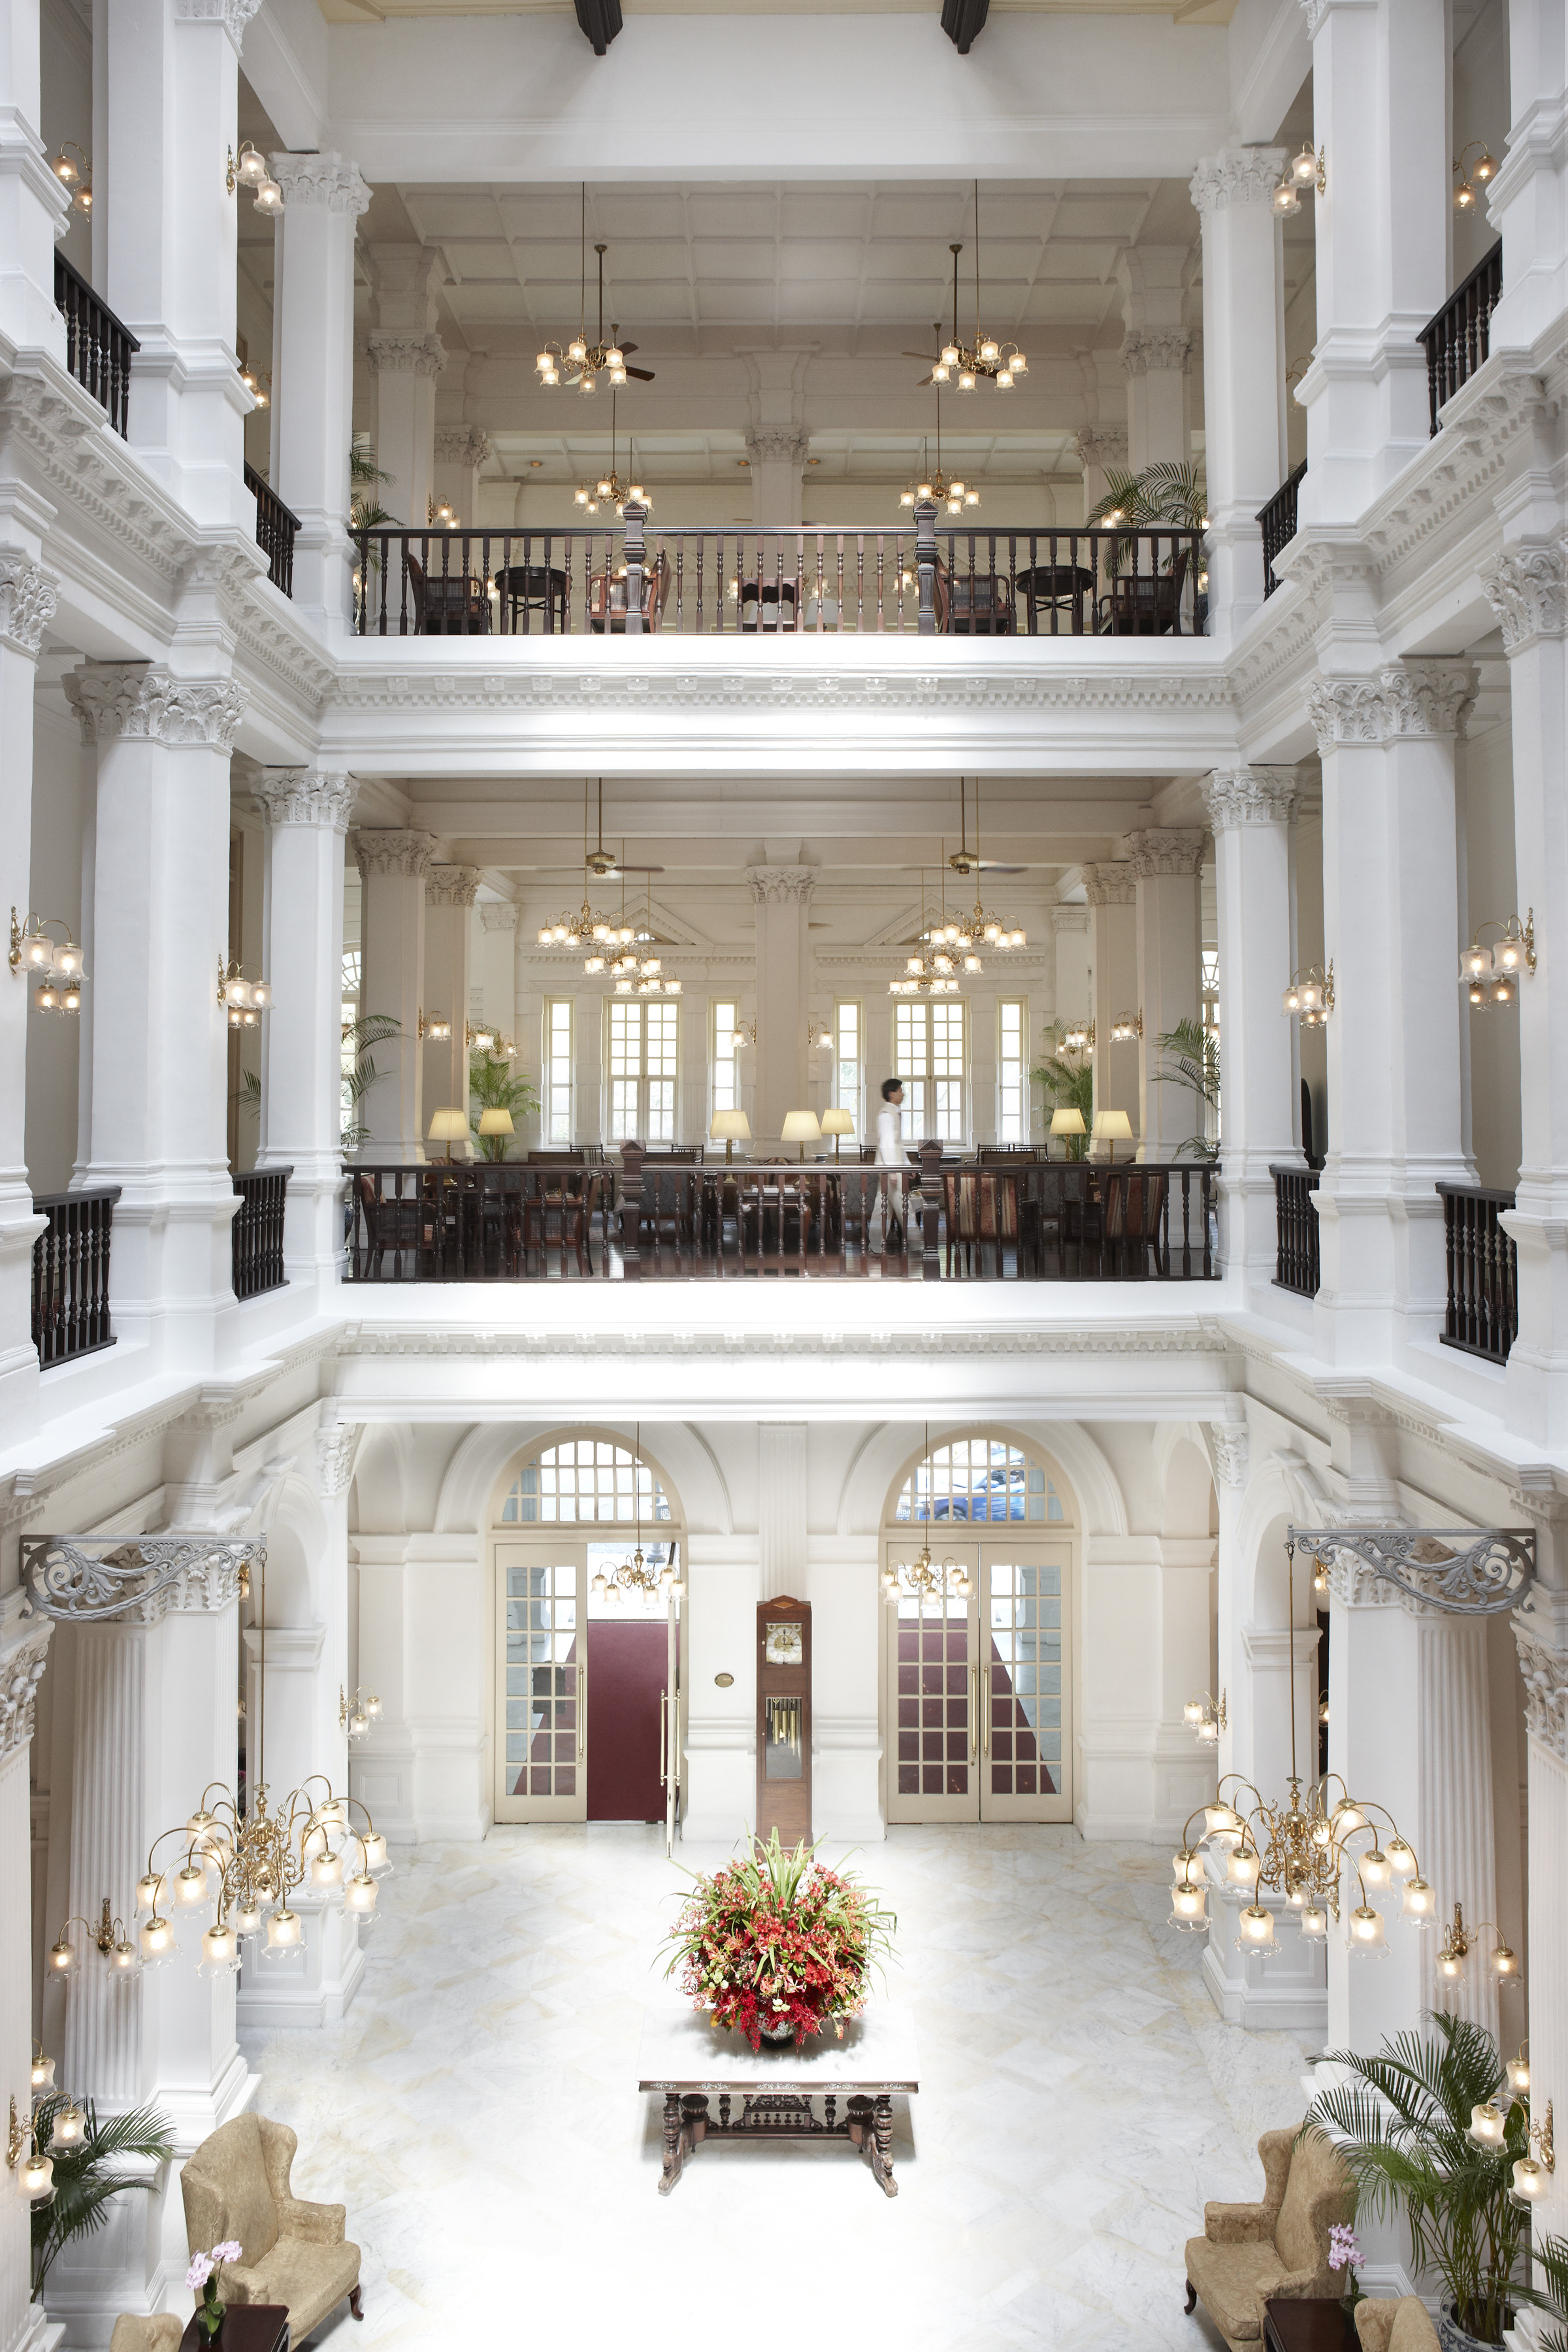 Raffles hotel singapore cellophaneland for Design hotel singapore